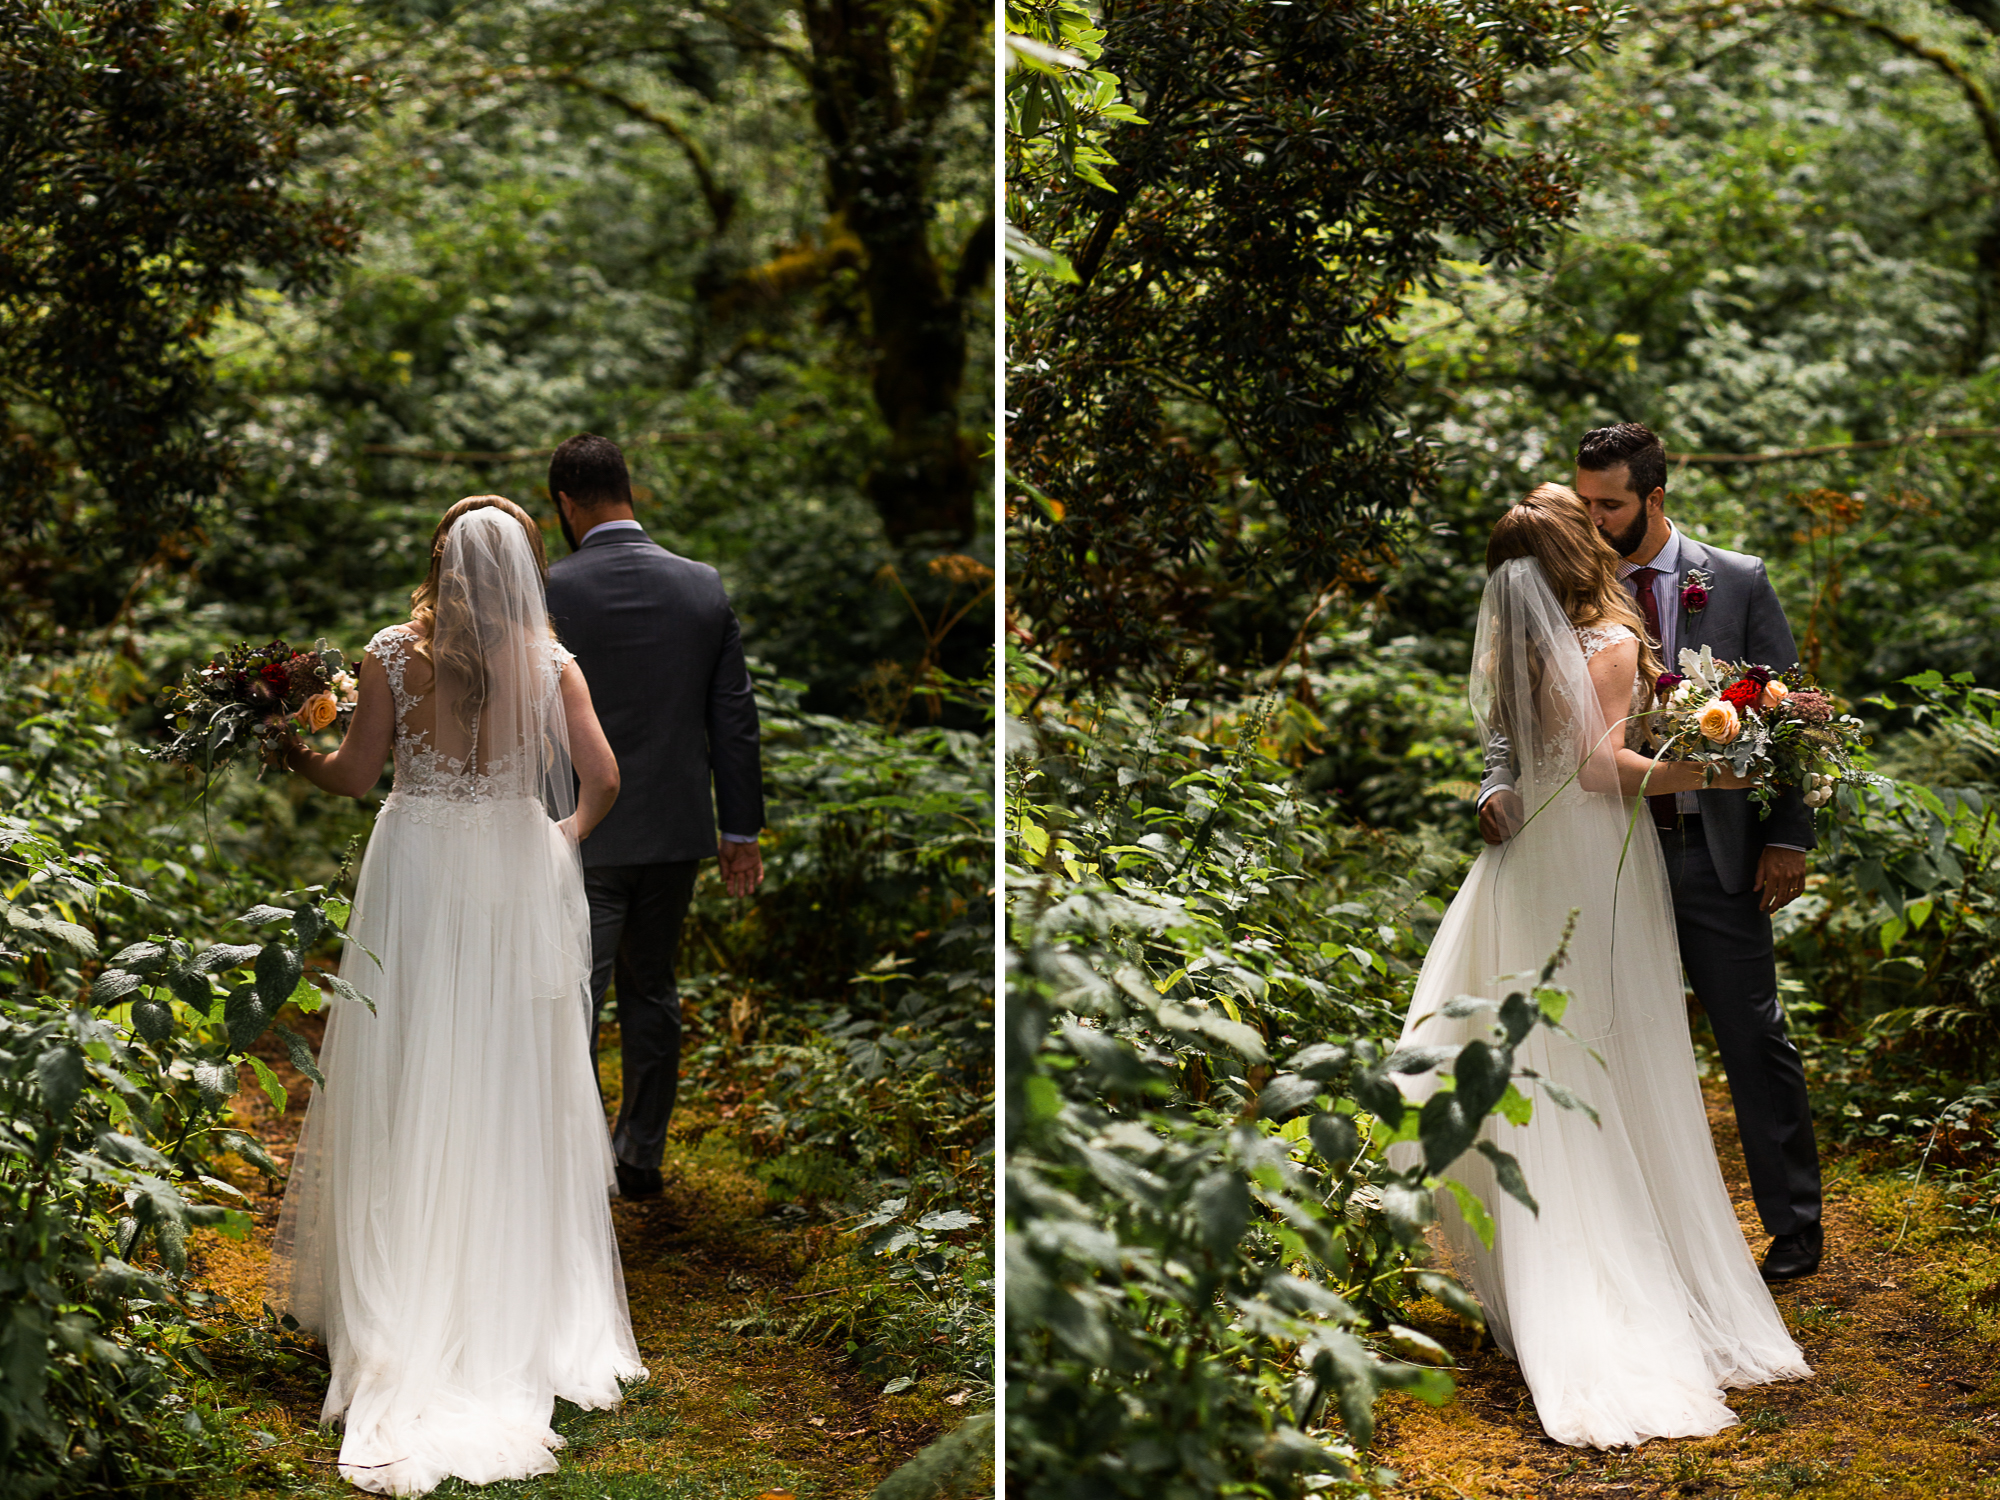 Alayna & Eric - Wedding - Bridal Veil Lakes - Malina Rose Photography- BlogD5.jpg